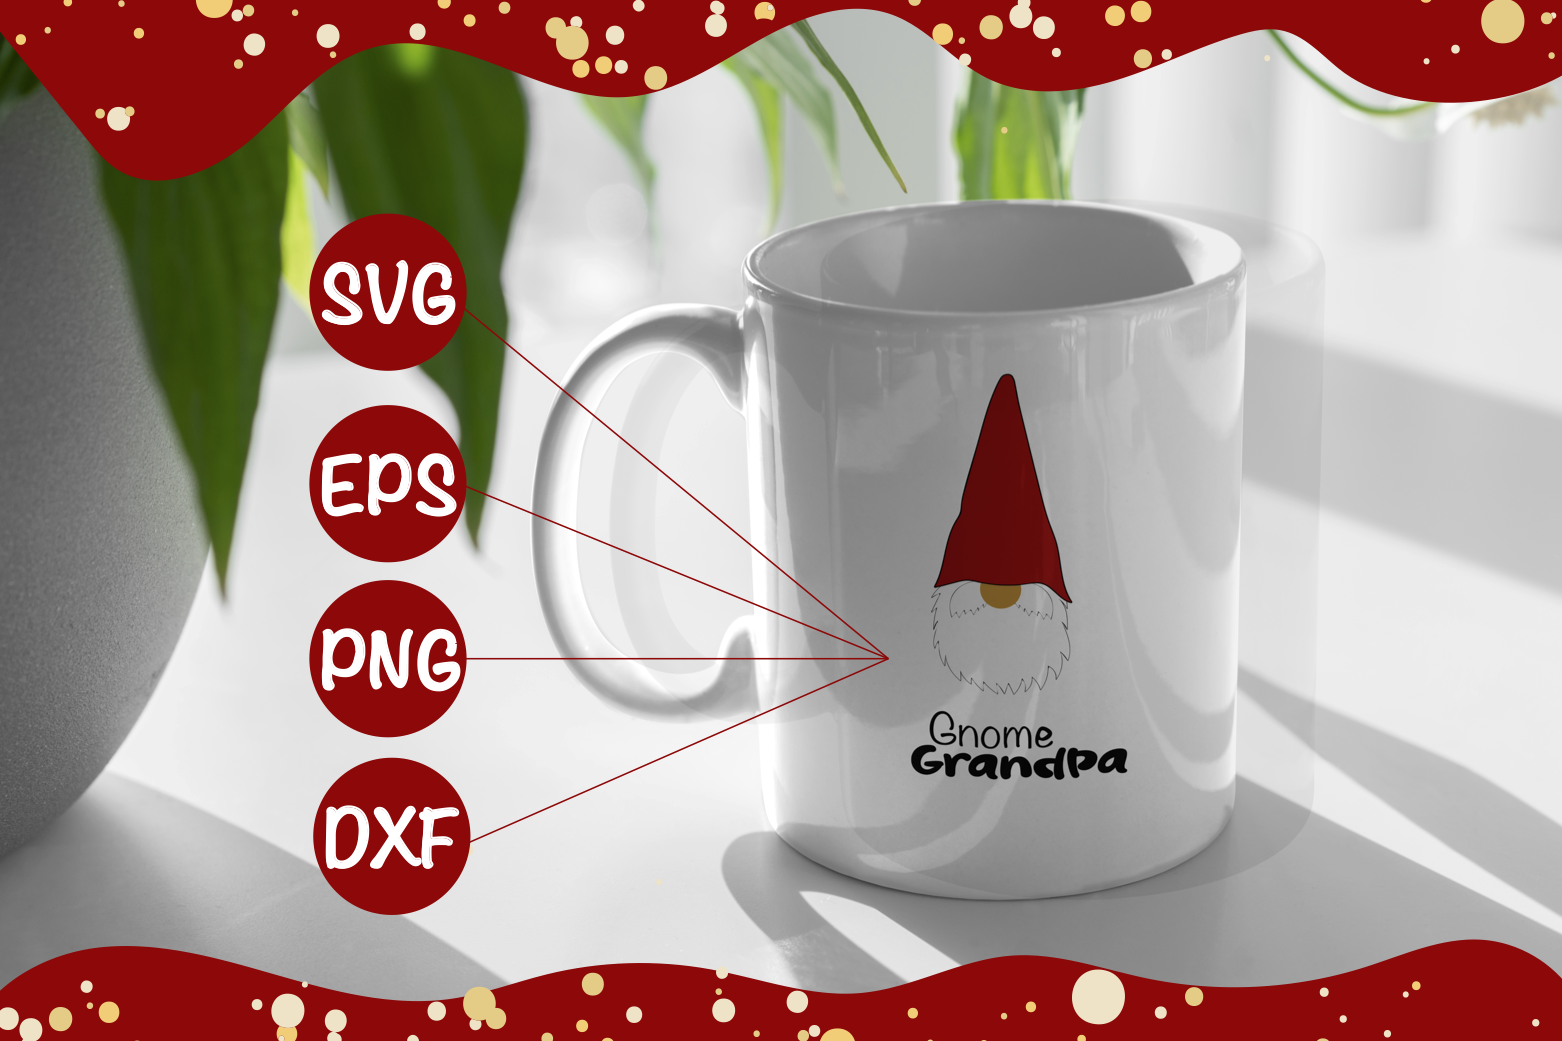 Gnome Grandpa svg,eps,png, dxf example image 1